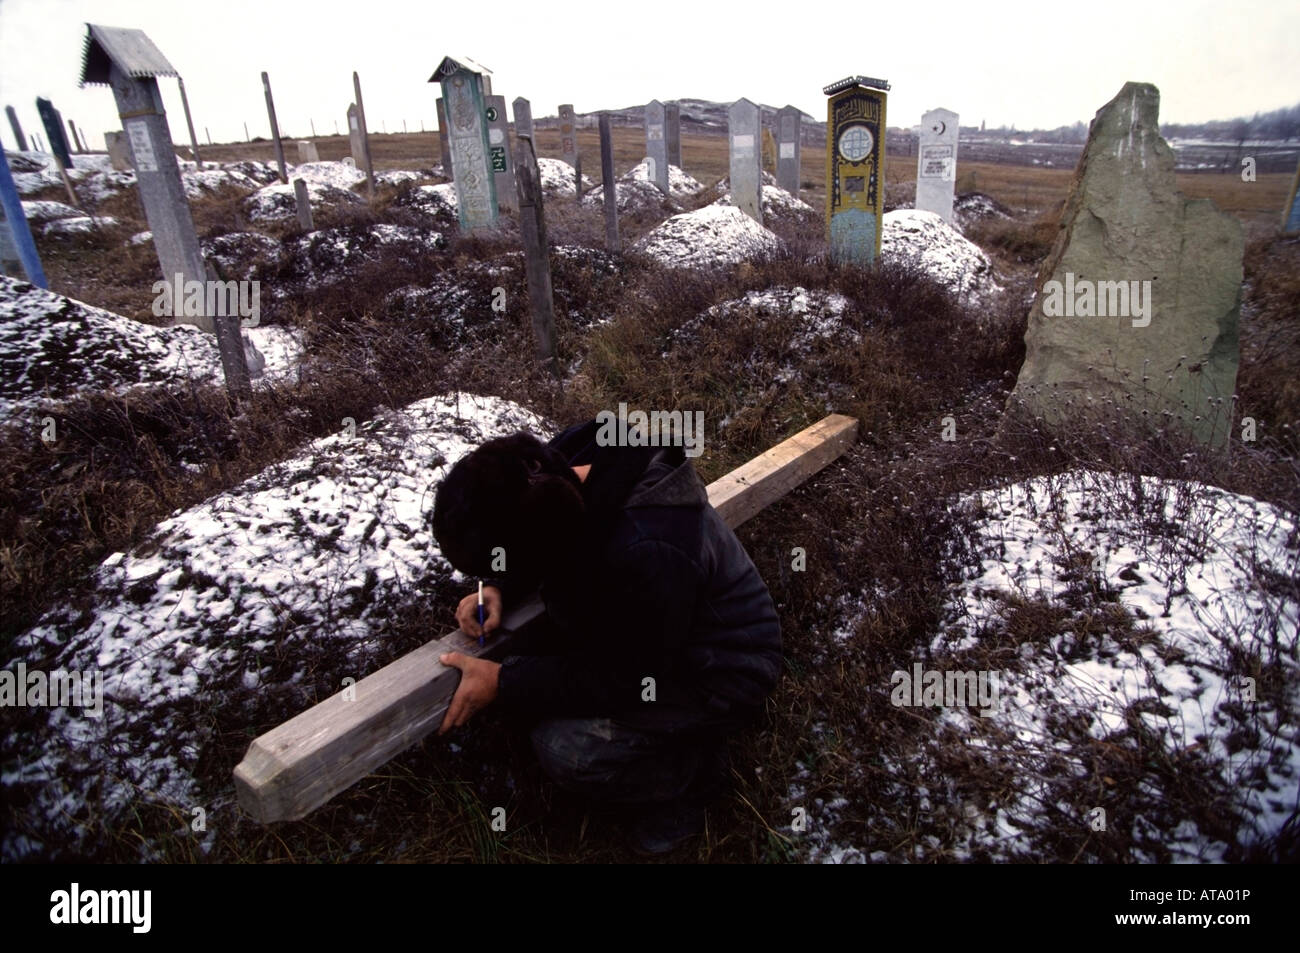 Chechen man marks his friend's grave in a cemetery near Grozny, Chechnya. - Stock Image